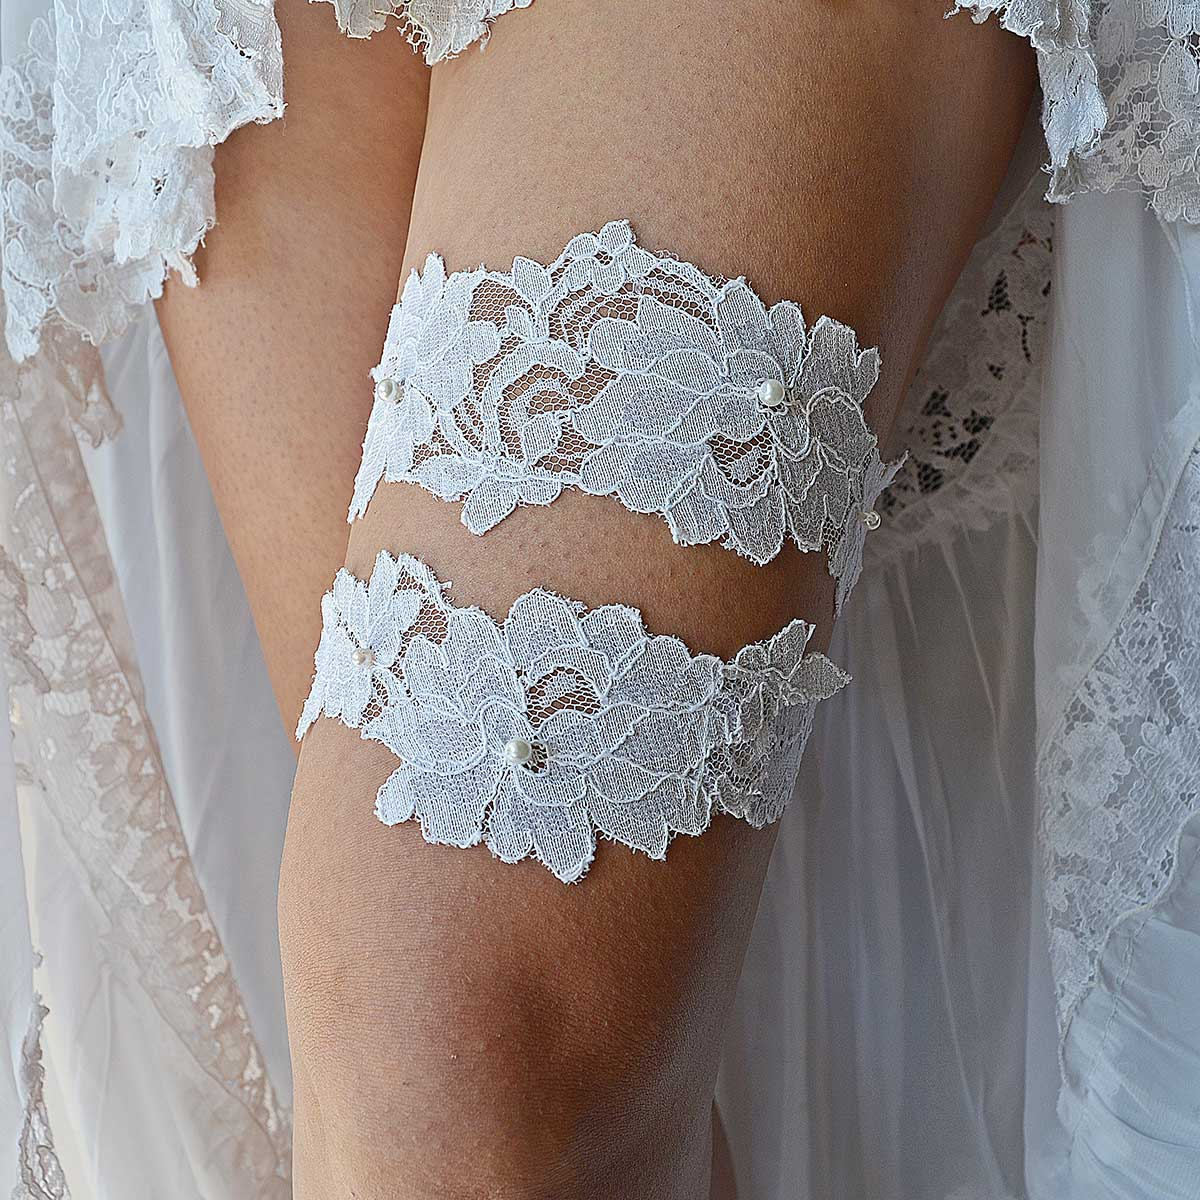 Handmade All White Bridal Garter With Applique Lace & Pearls